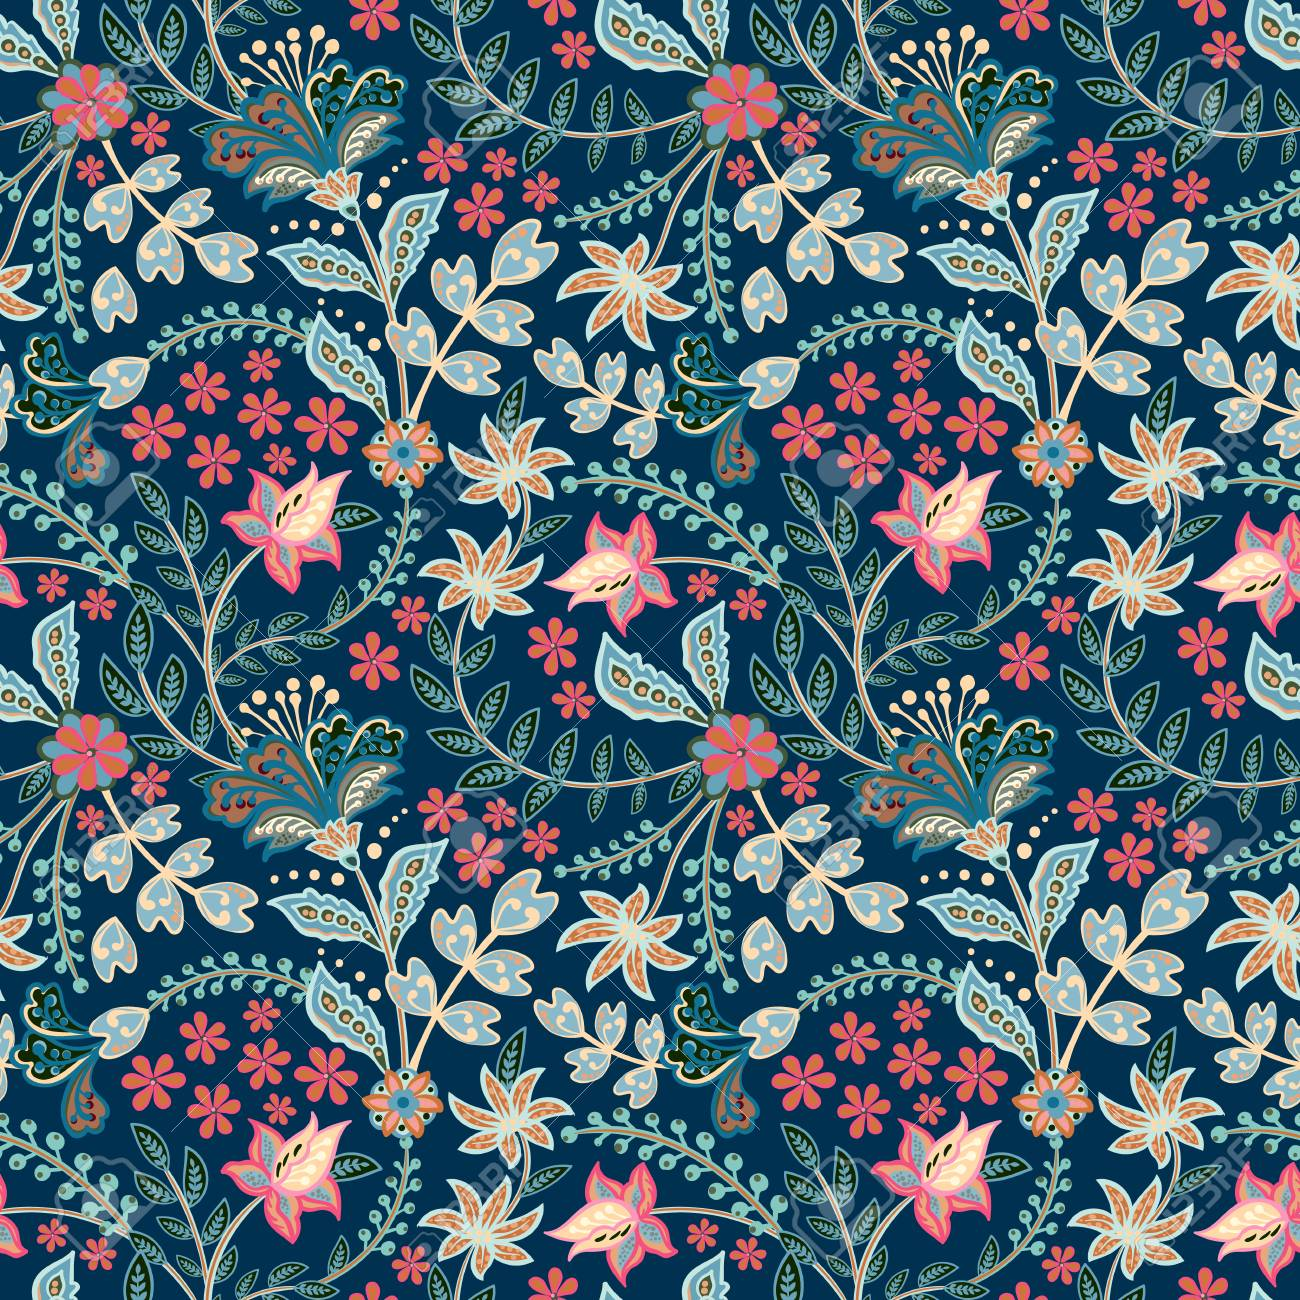 Retro hand draw flower pattern in the many kind of florals. Botanical Motifs scattered random. Seamless vector texture. For fashion prints. Printing with in hand drawn style on white background. - 126833375